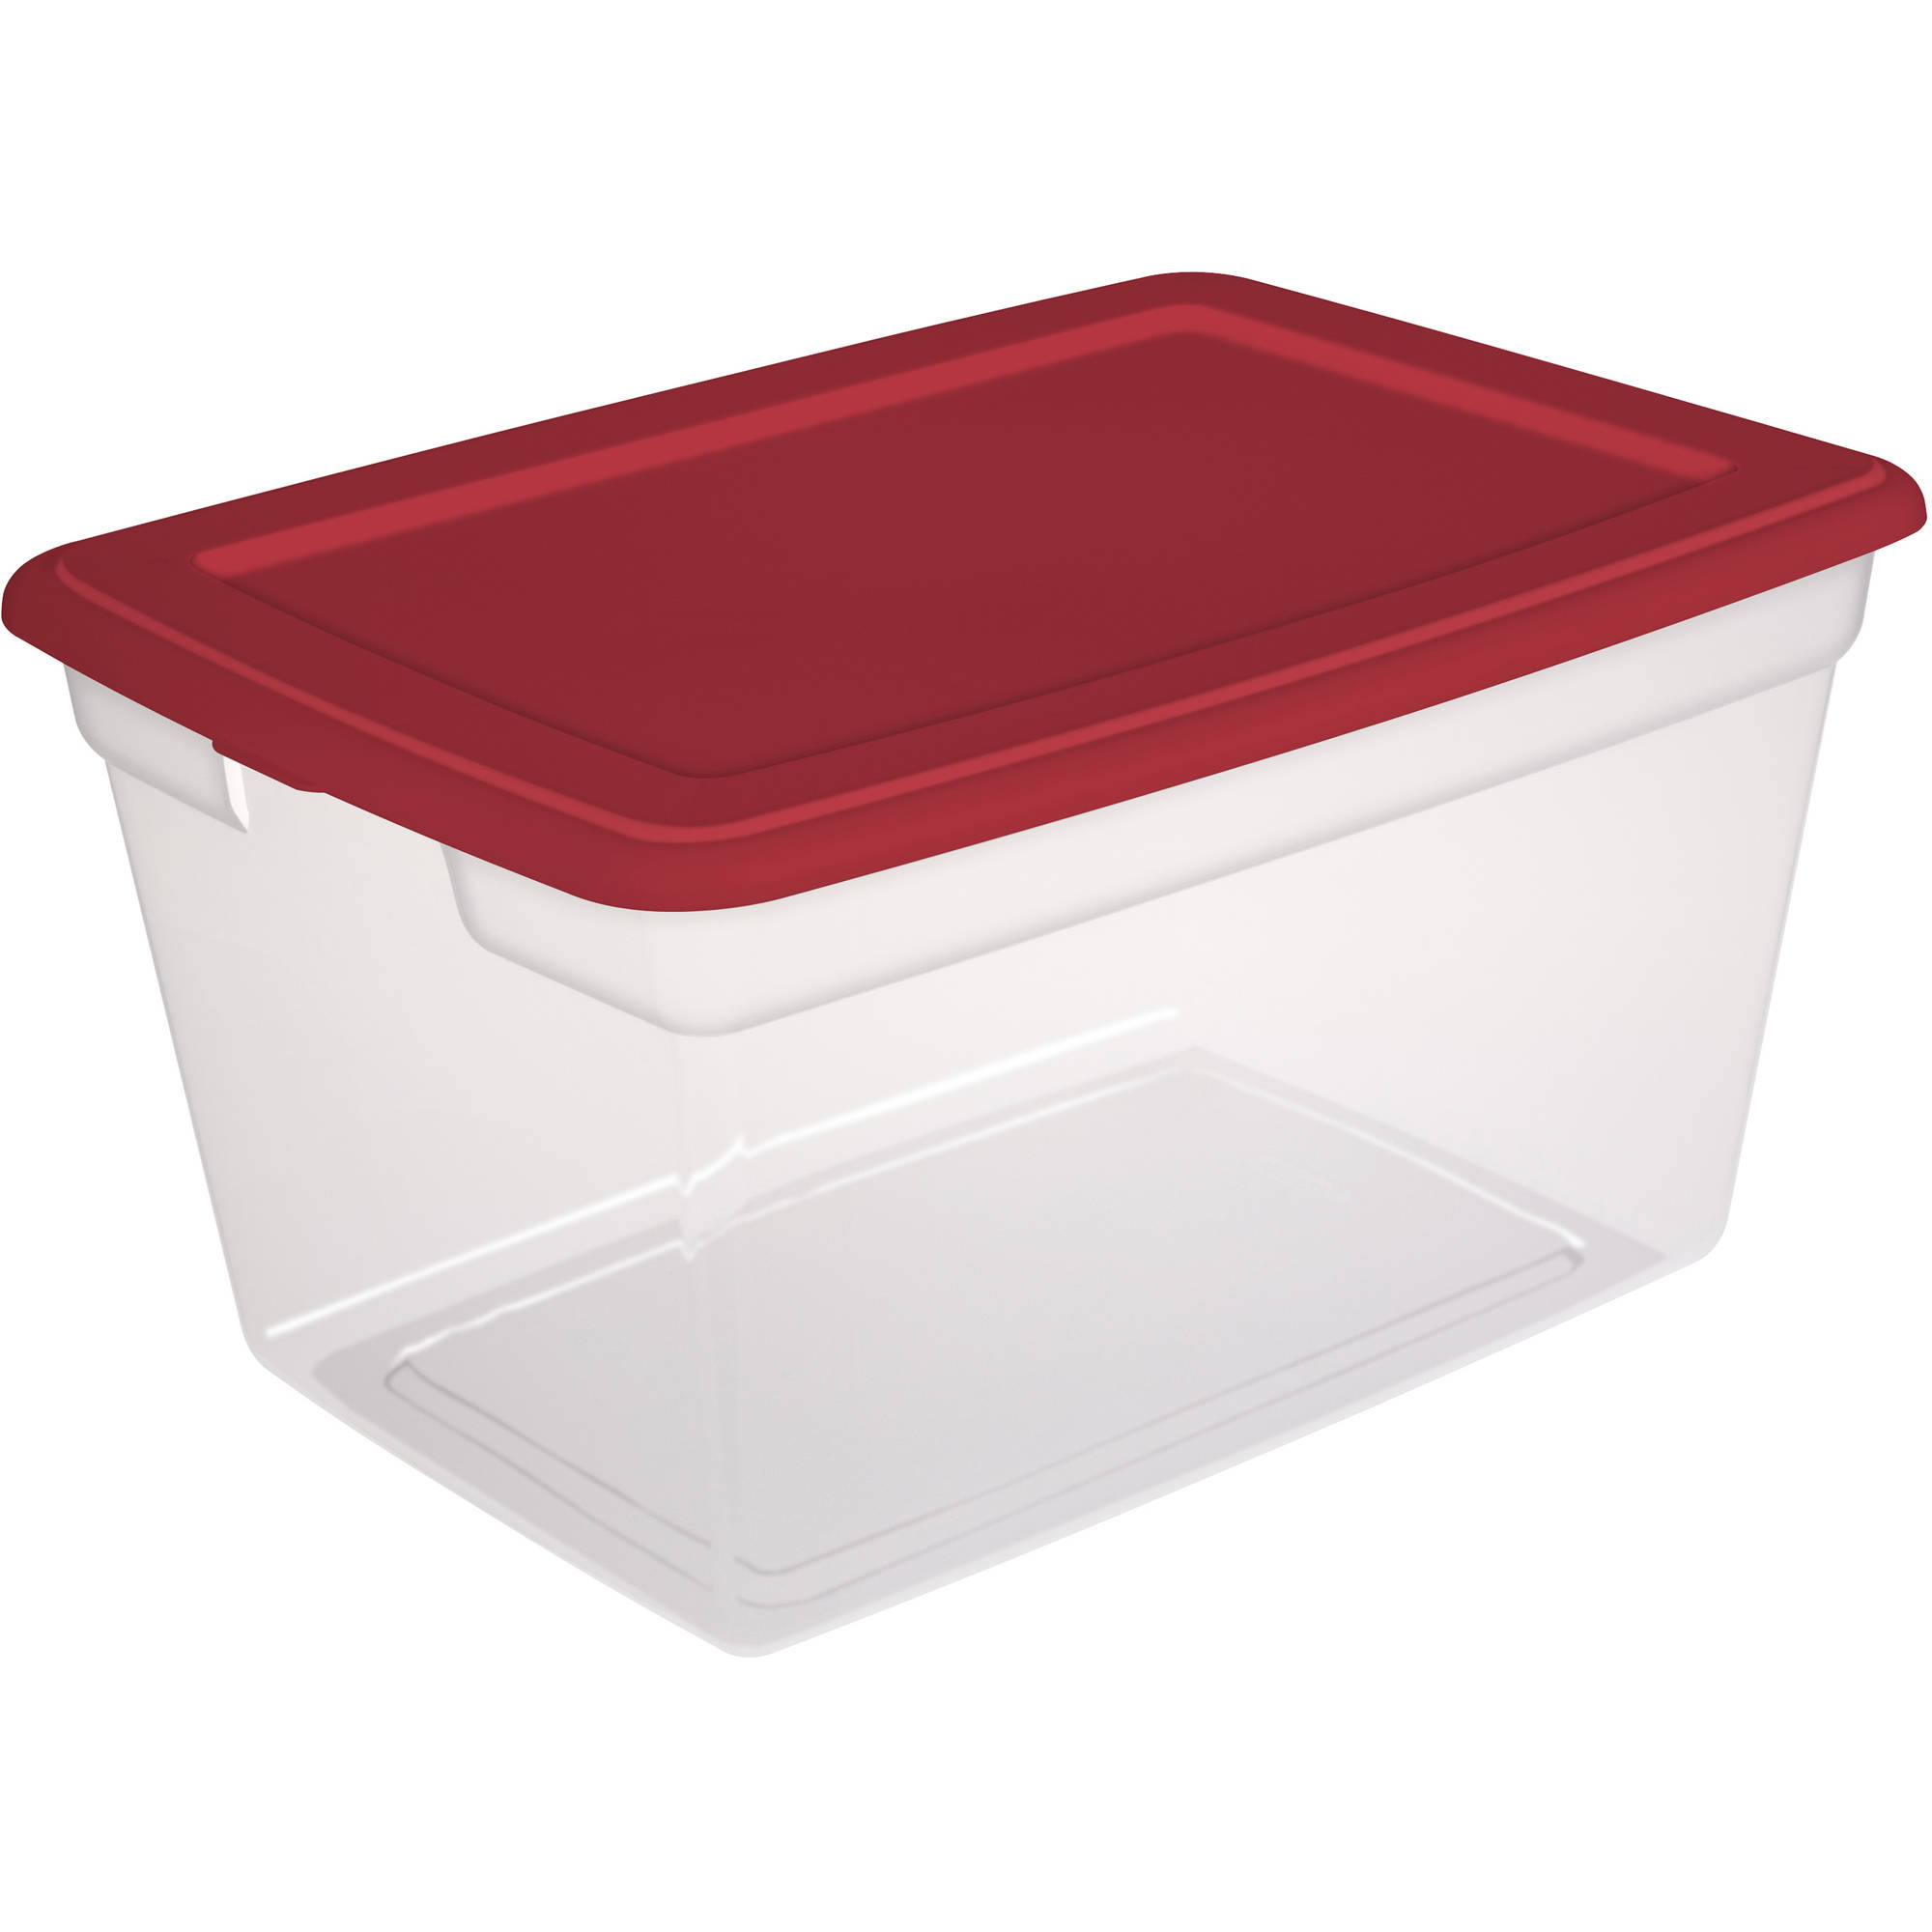 Sterilite 58-Quart Storage Box, Infra Red (Available in Case of 8 or Single Unit)